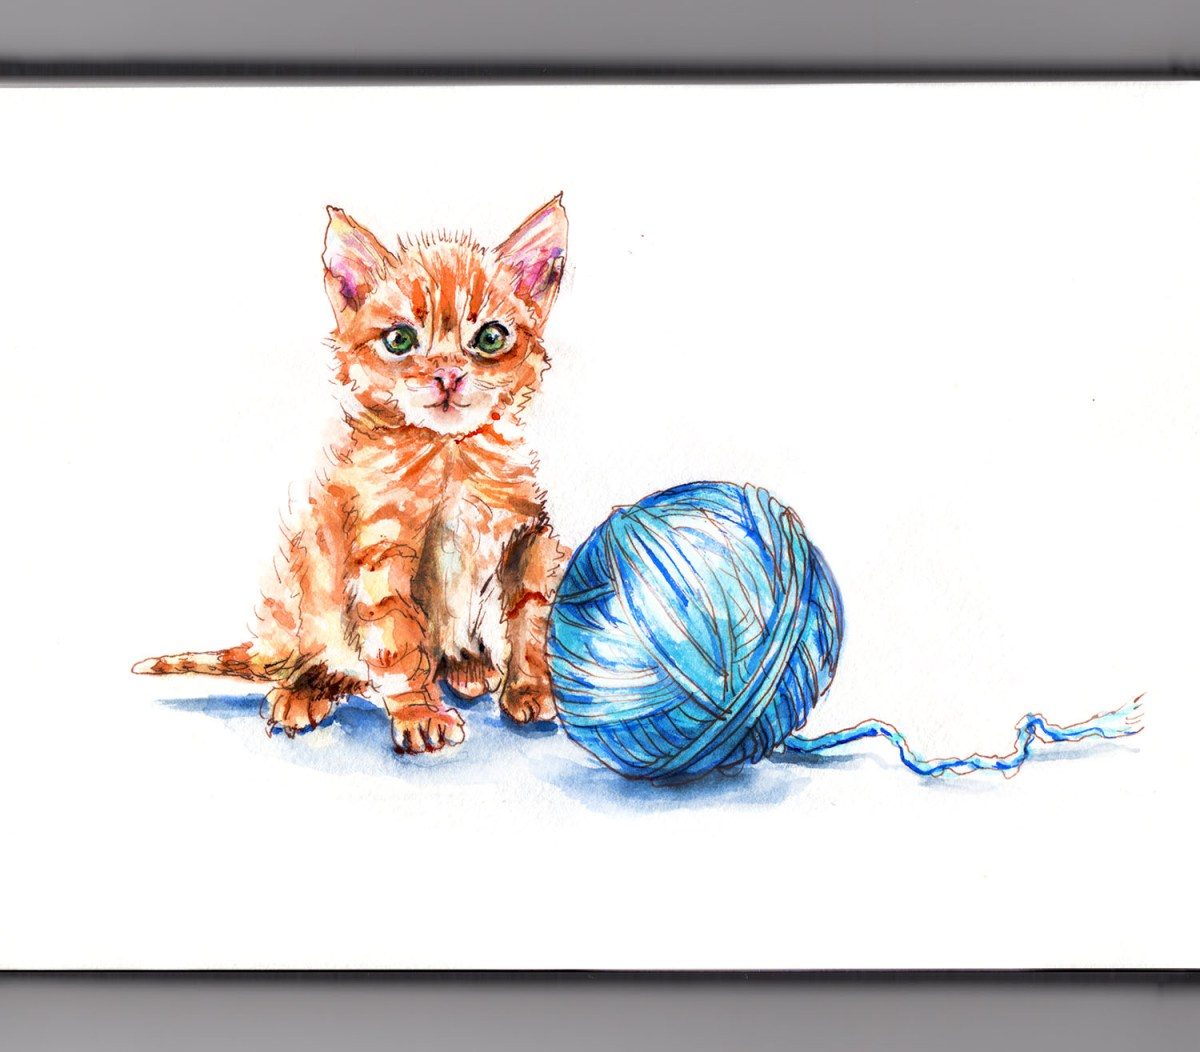 #WorldWatercolorGroup - Day 15 - Playing With A Pet - Cat And Yarn Ball - Doodlewash